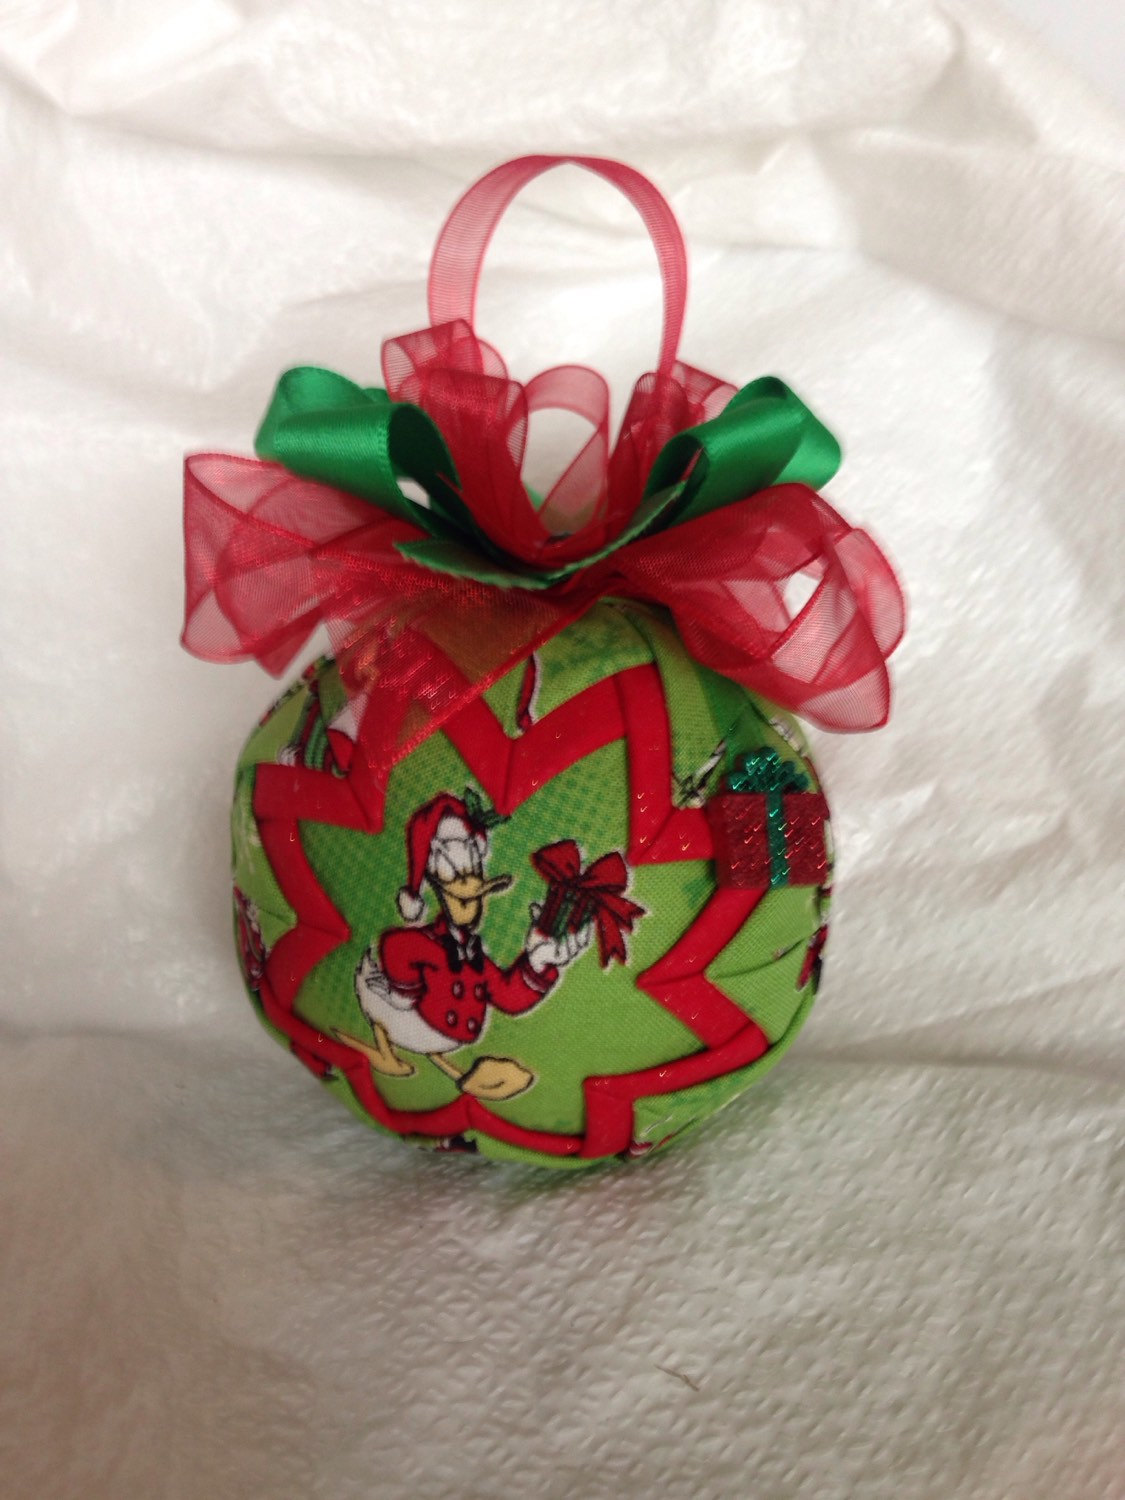 Disney Inspired Donald Duck Gifts Quilted Christmas Ornament From Ncgal Creations